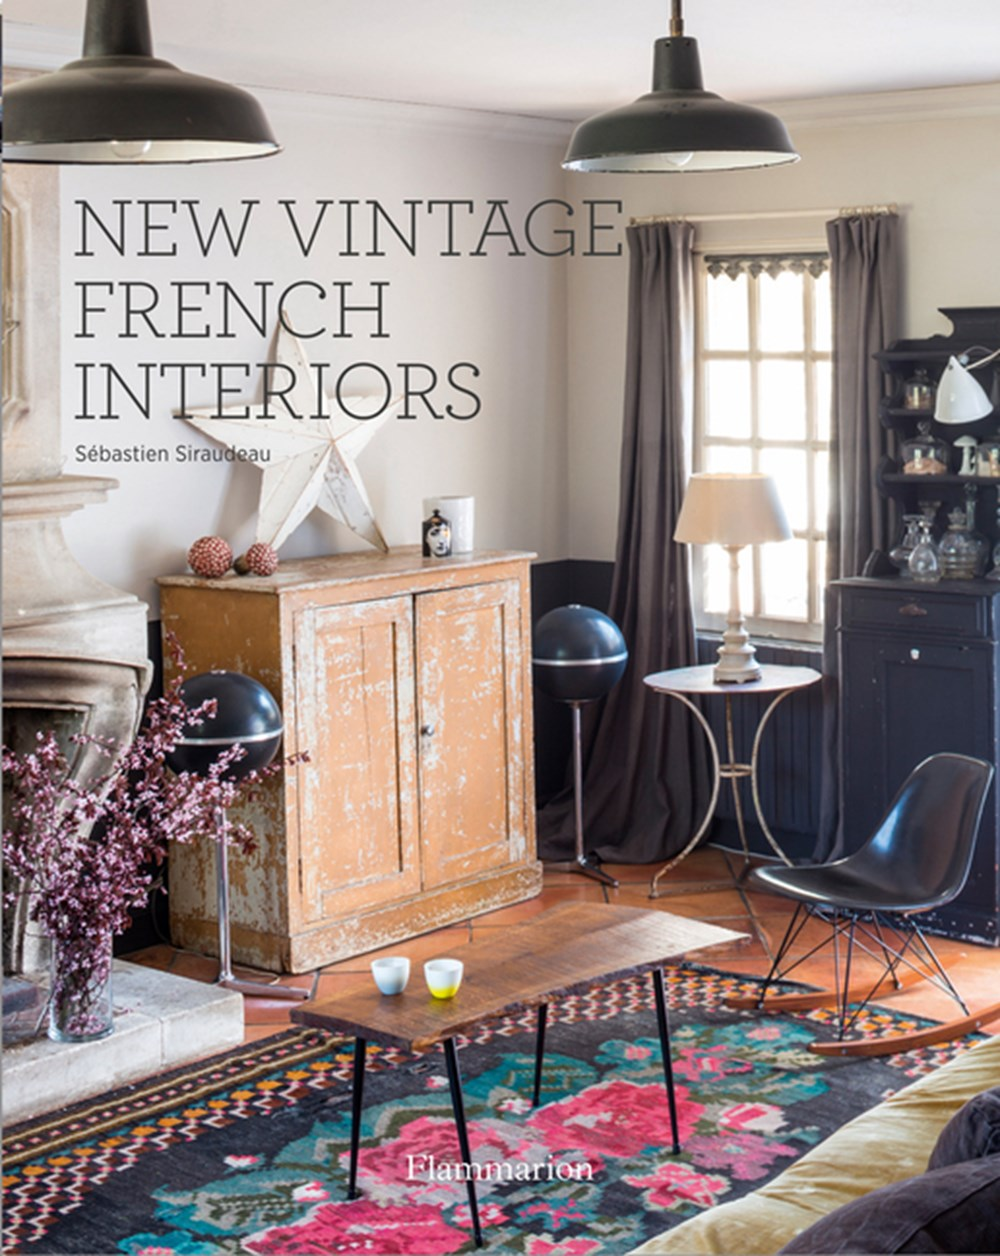 New Vintage French Interiors